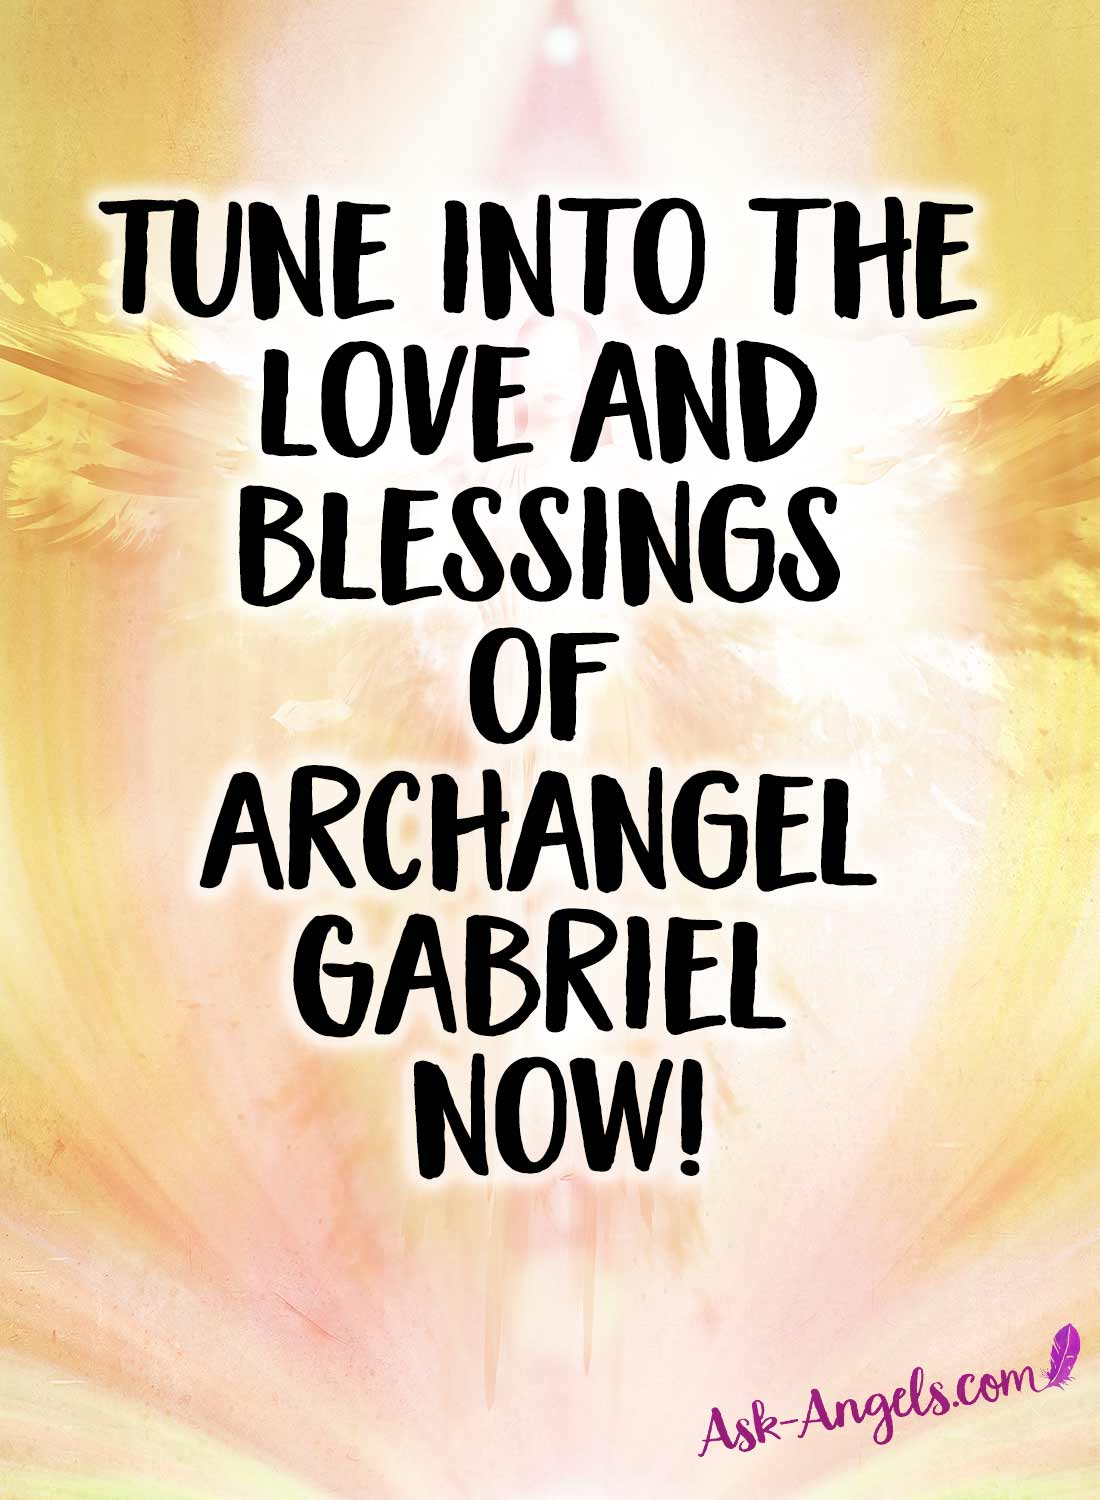 Tune into the love and blessings of the archangel of strength and communication.